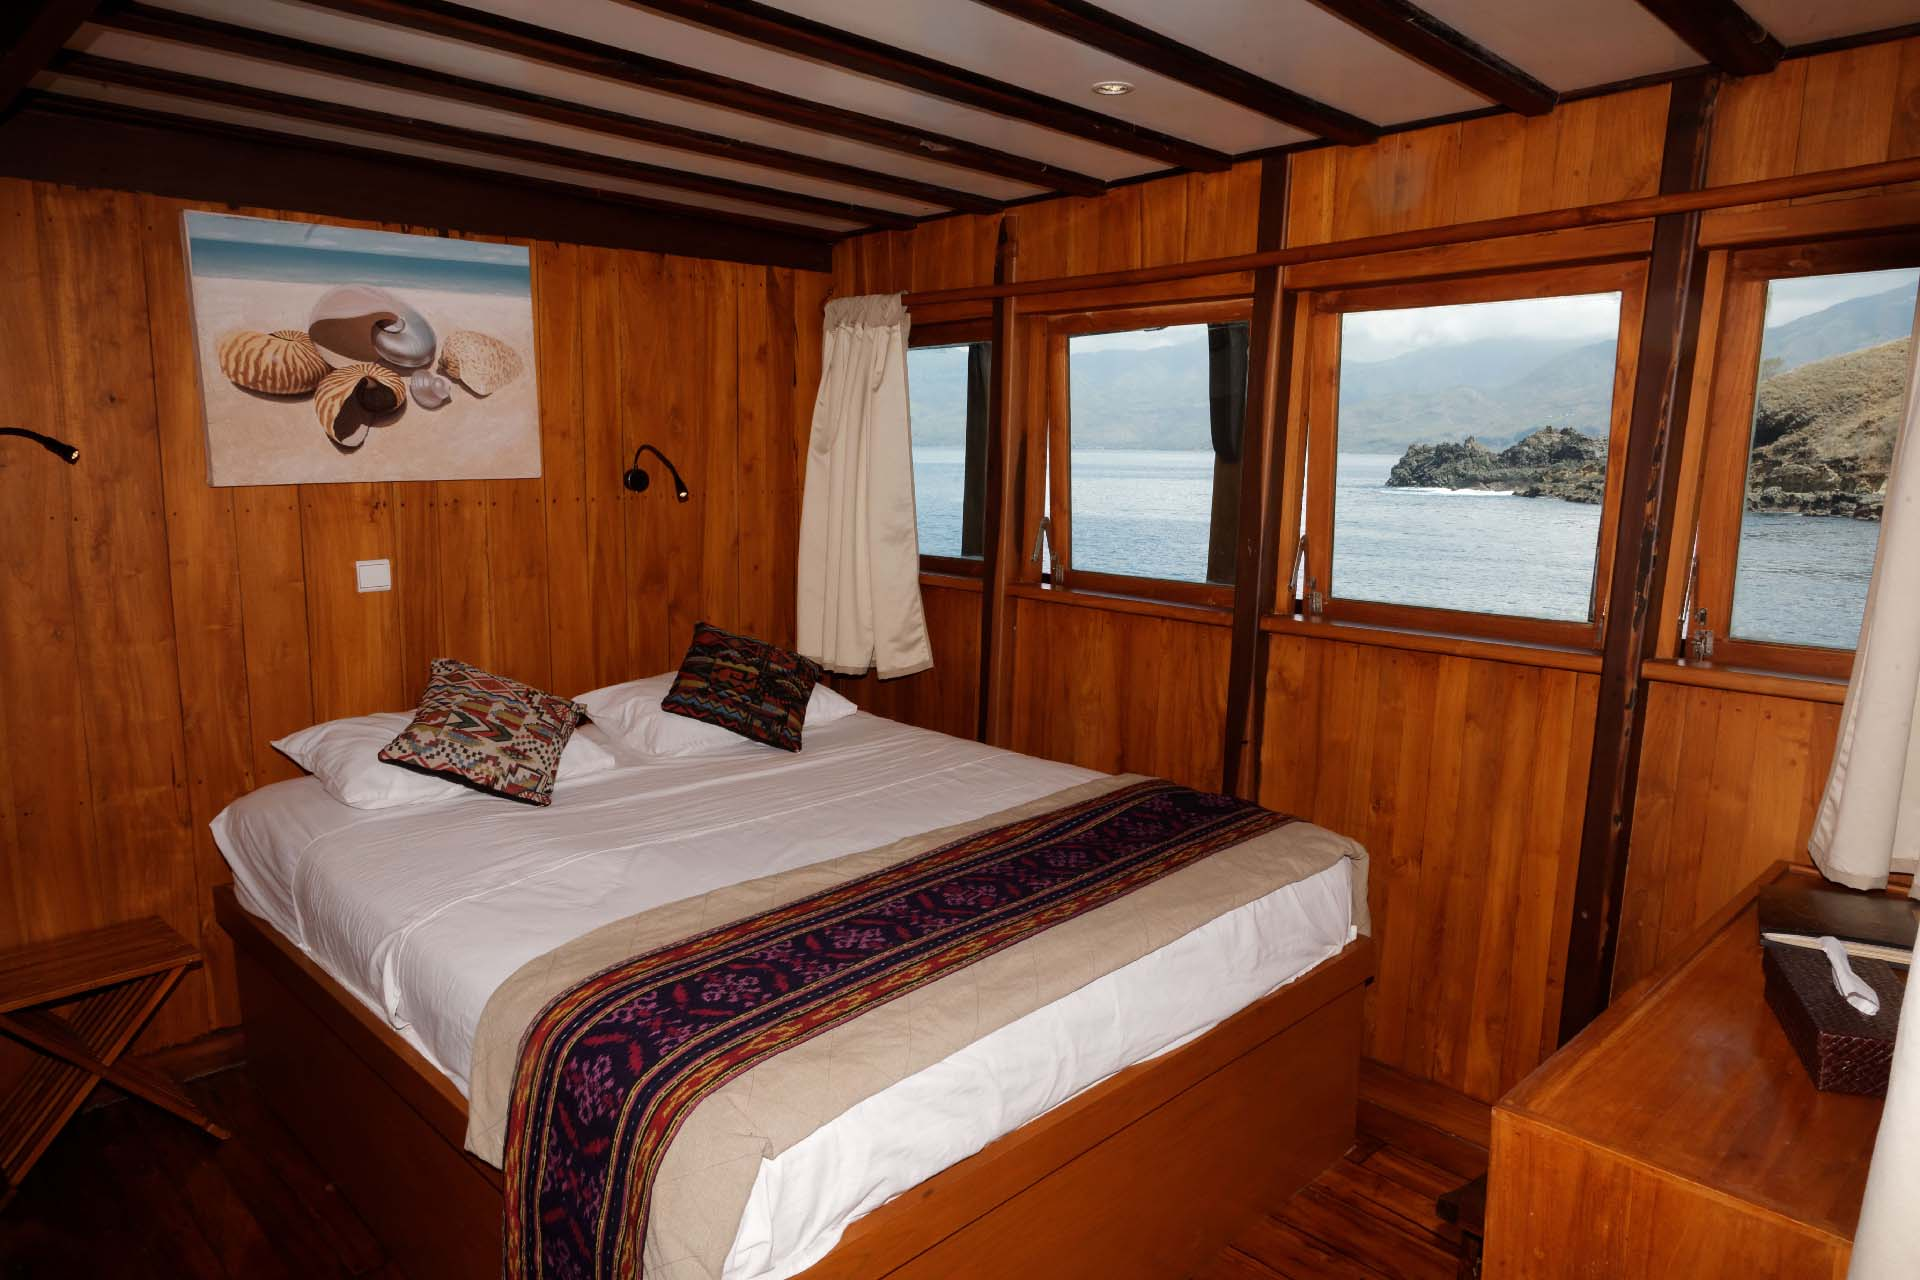 View of Amira Liveaboard from the bedroom